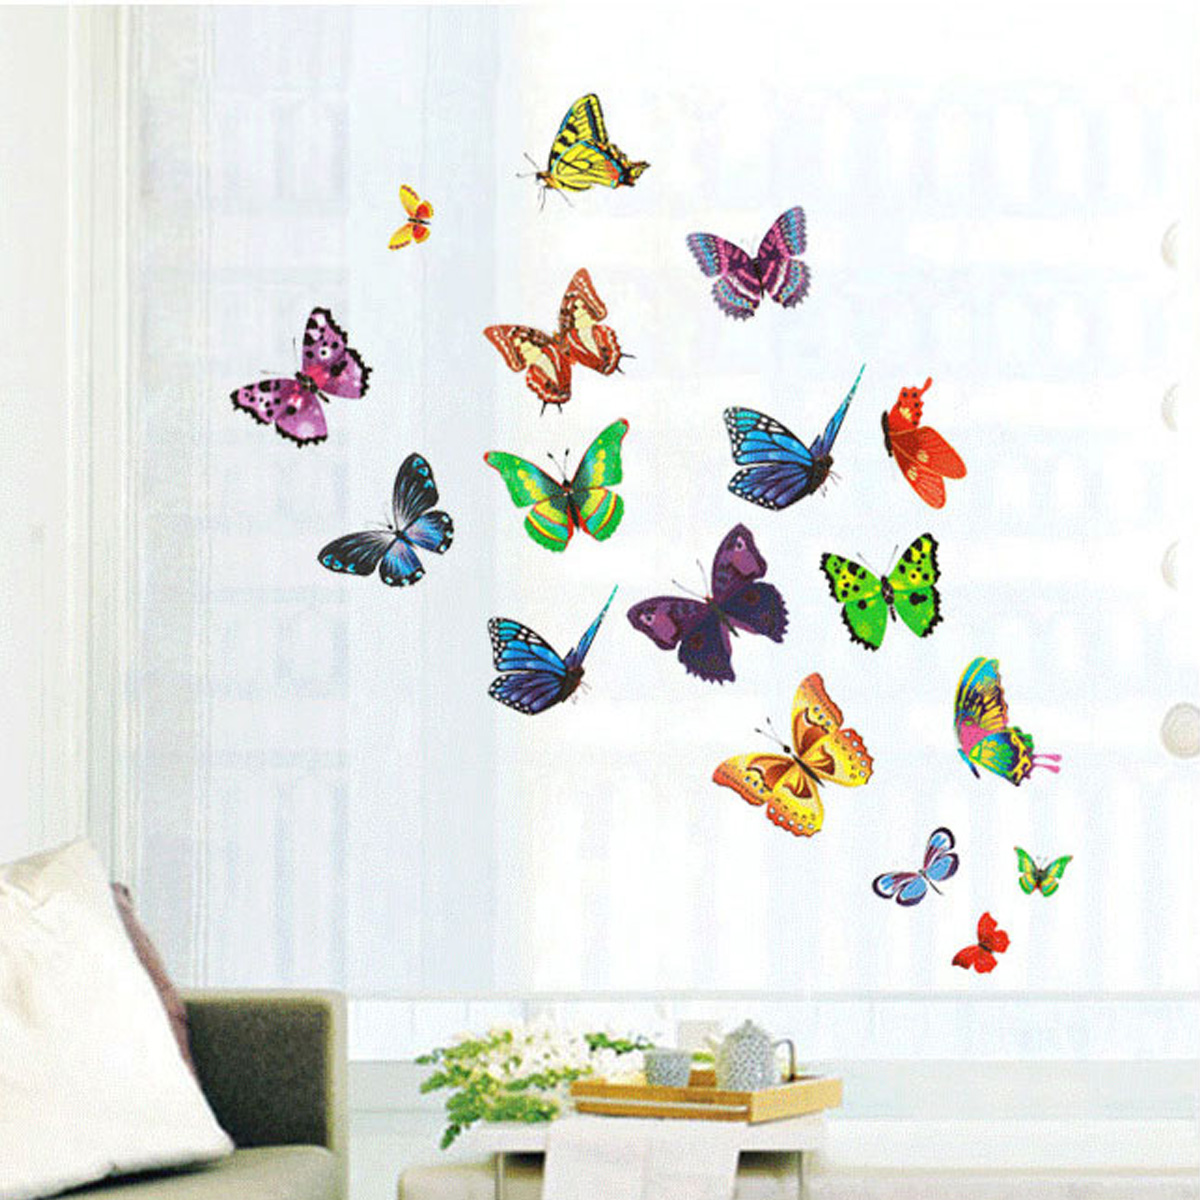 Diy 17 butterflies wall stickers mural art decals for Butterfly wall mural stickers